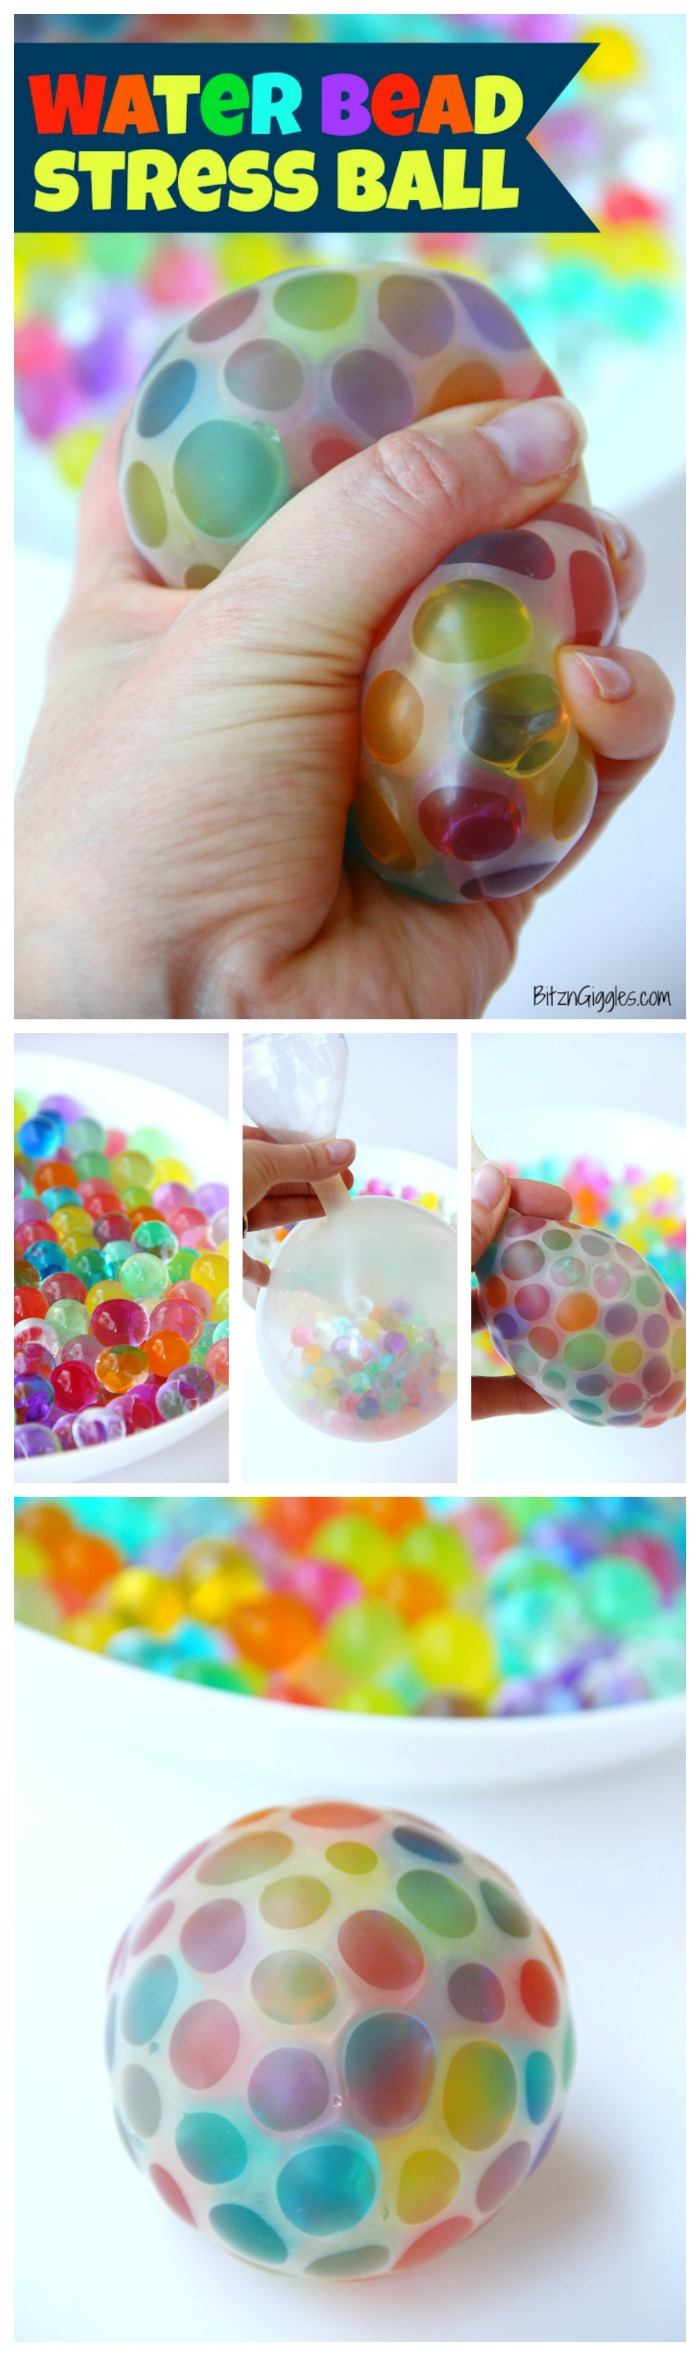 Water Bead Stress Ball - A transparent balloon filled with colorful water beads makes for a soothing and fun kids toy or stress reliever!